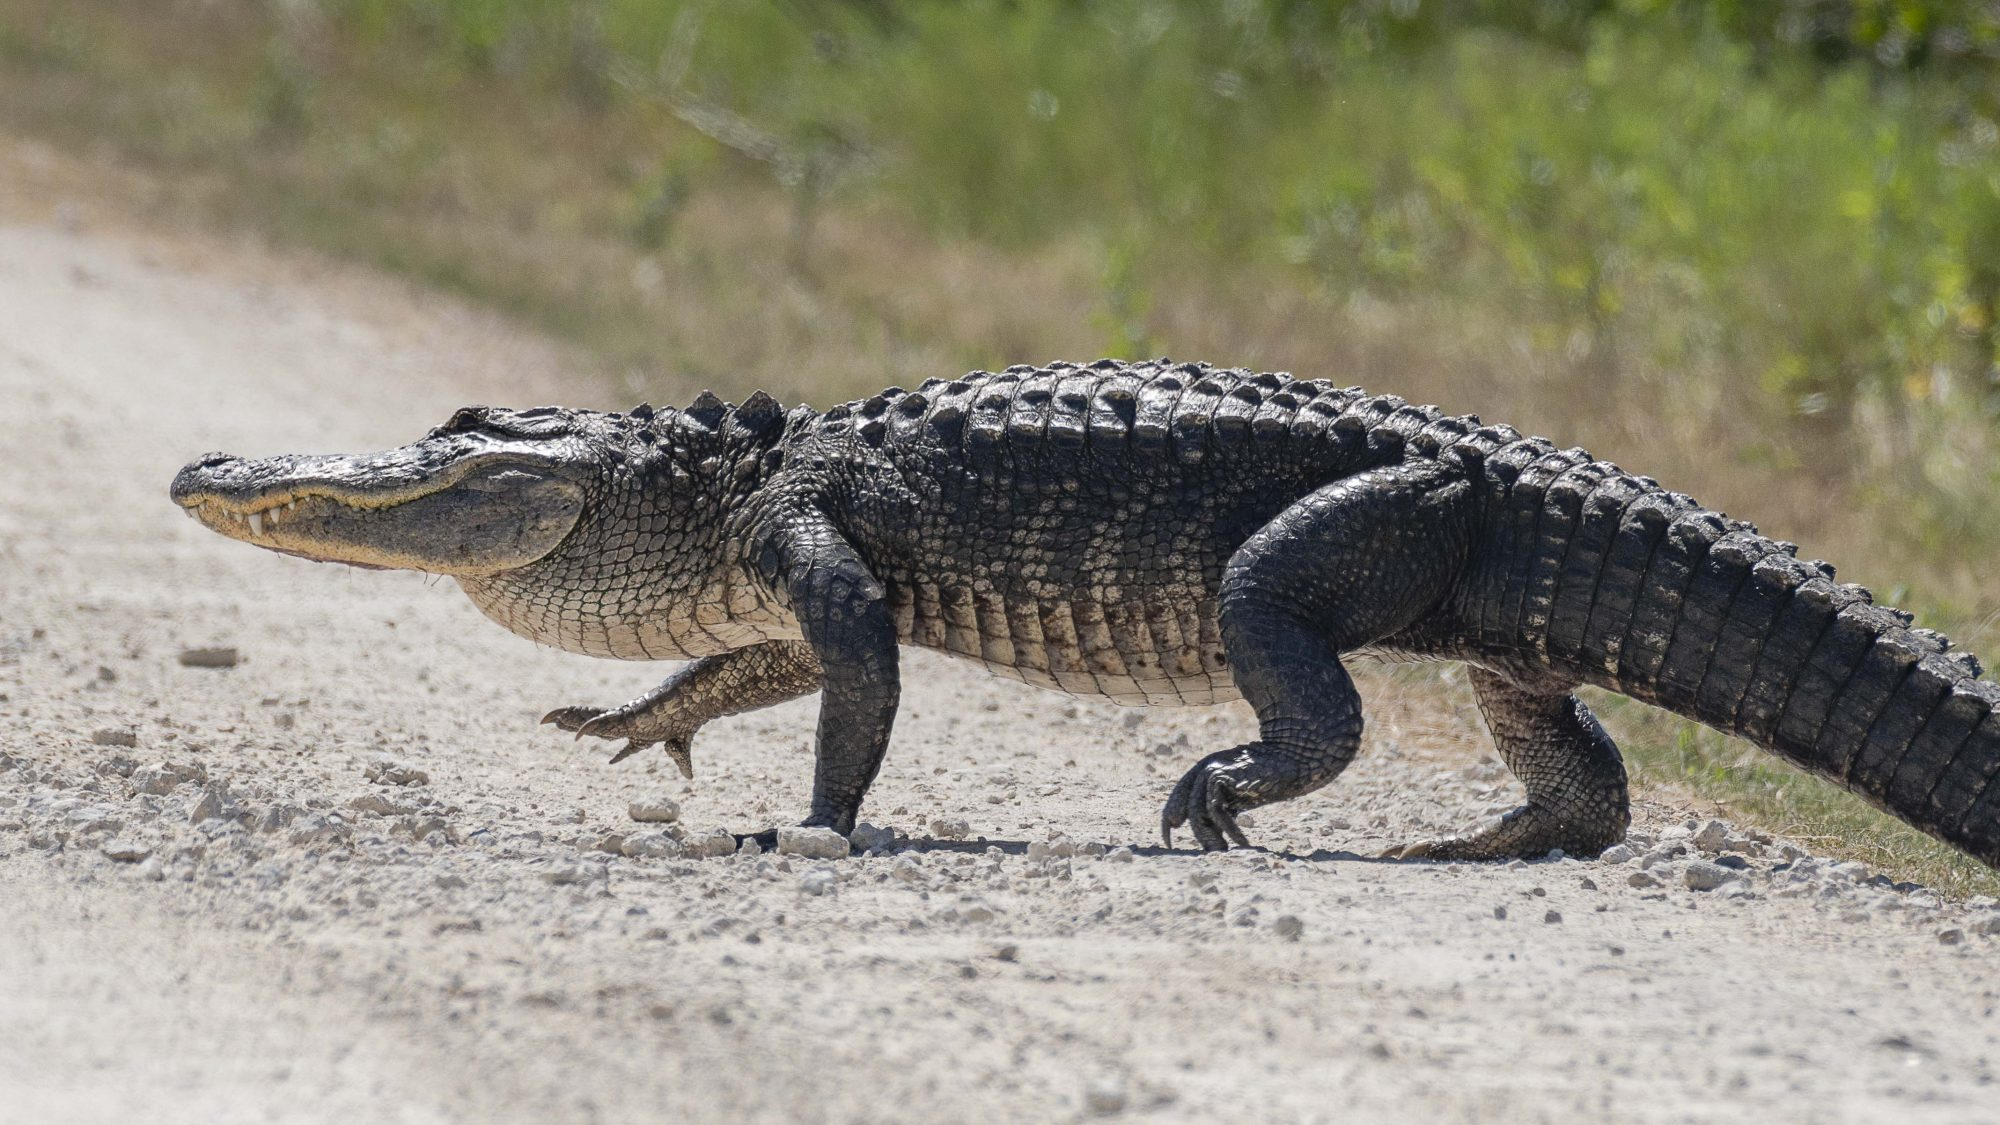 Alligator Crossing the Road